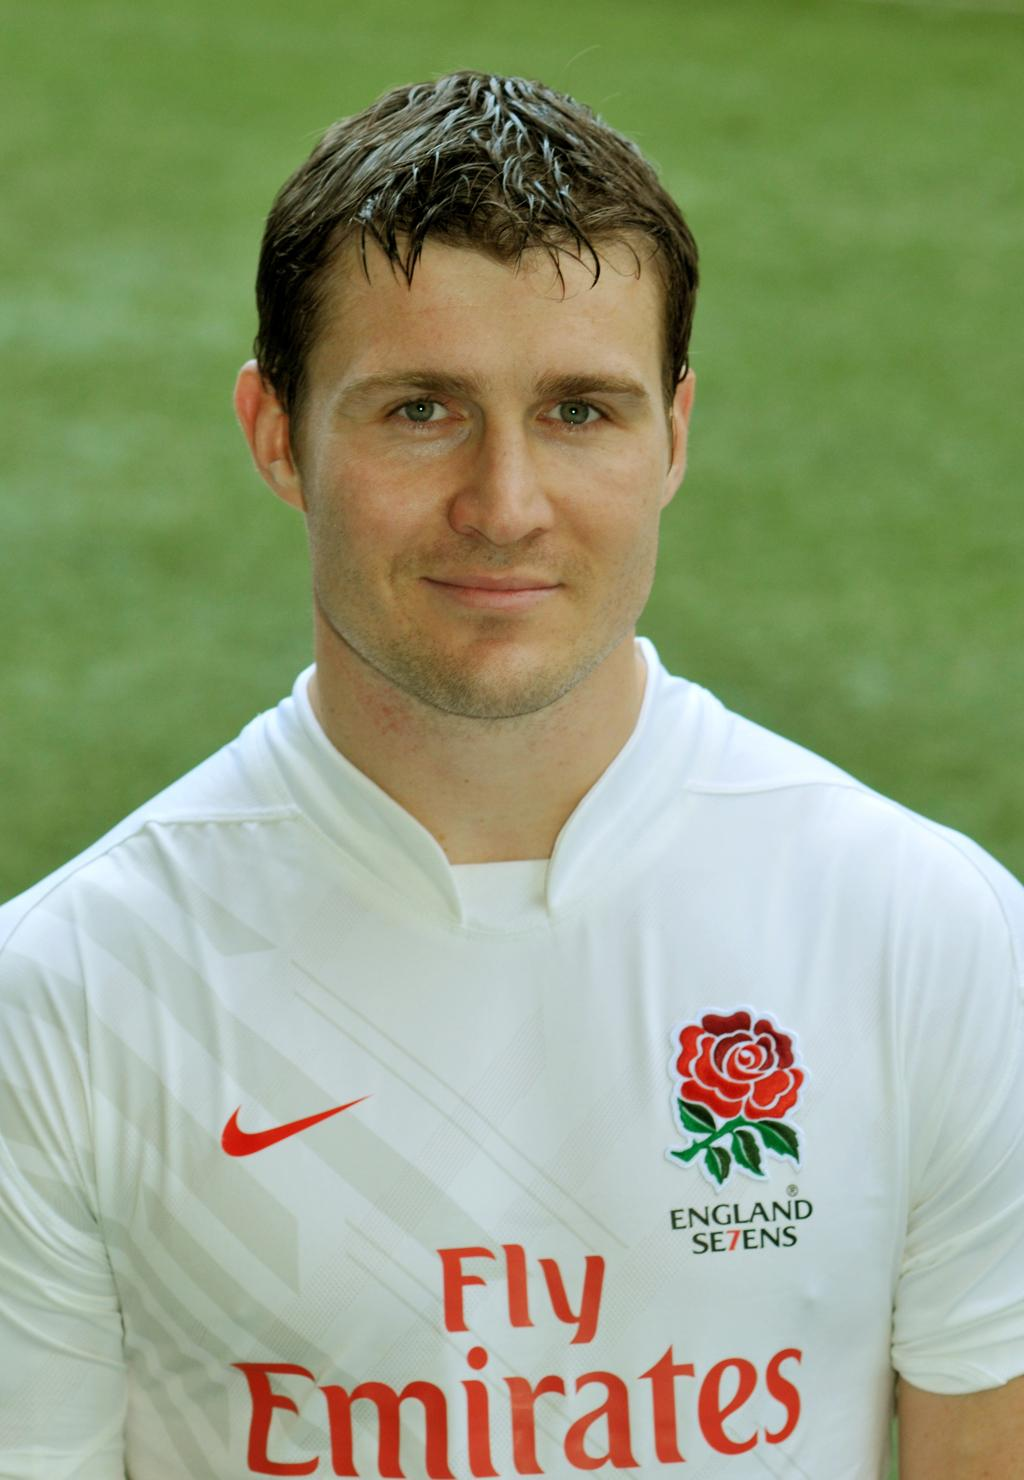 Simon Hunt played rugby for England